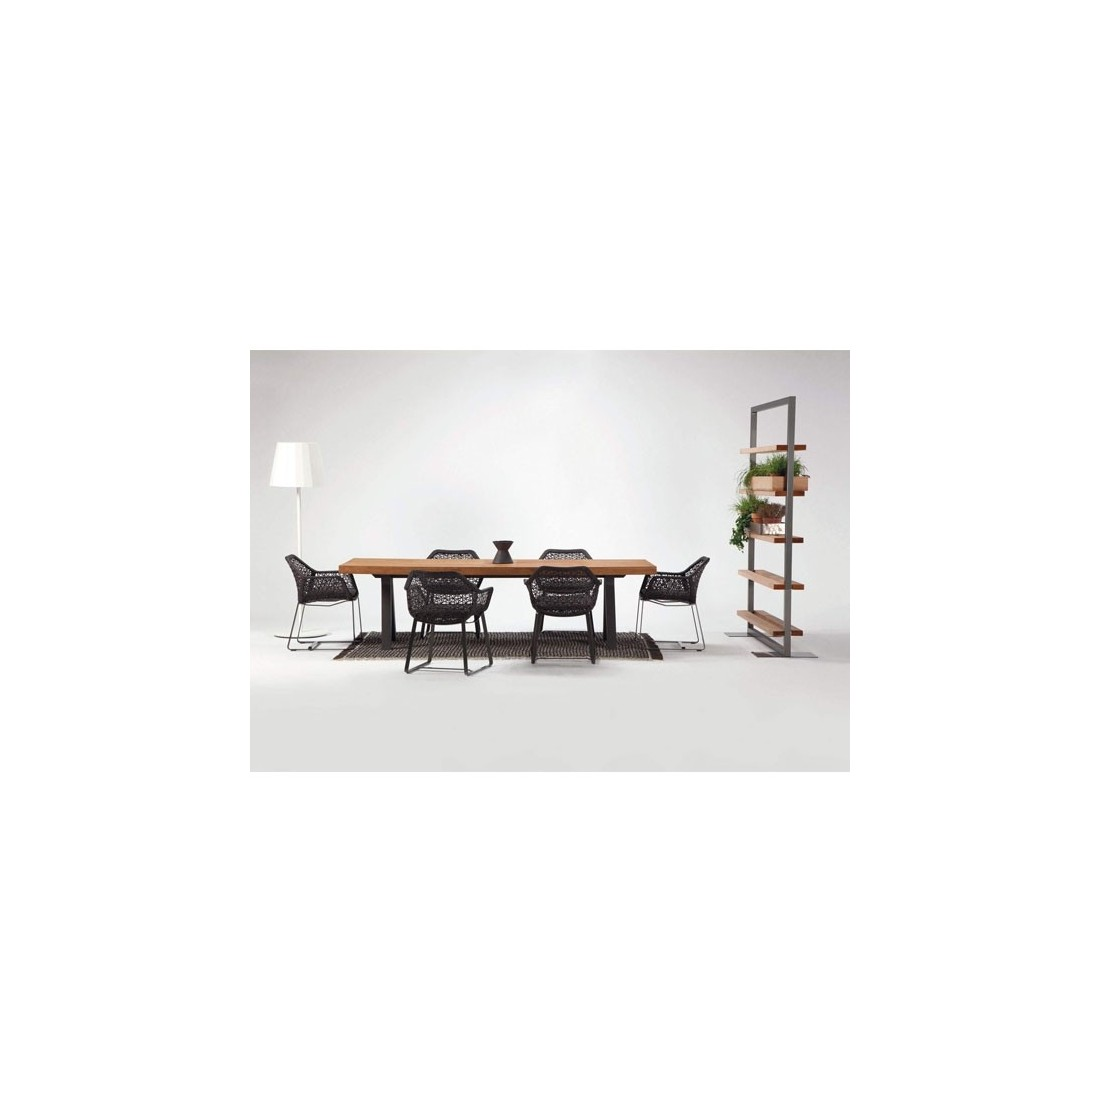 fauteuil de table a manger trendy fauteuil salle manger scandinave infini avec salle a manger. Black Bedroom Furniture Sets. Home Design Ideas